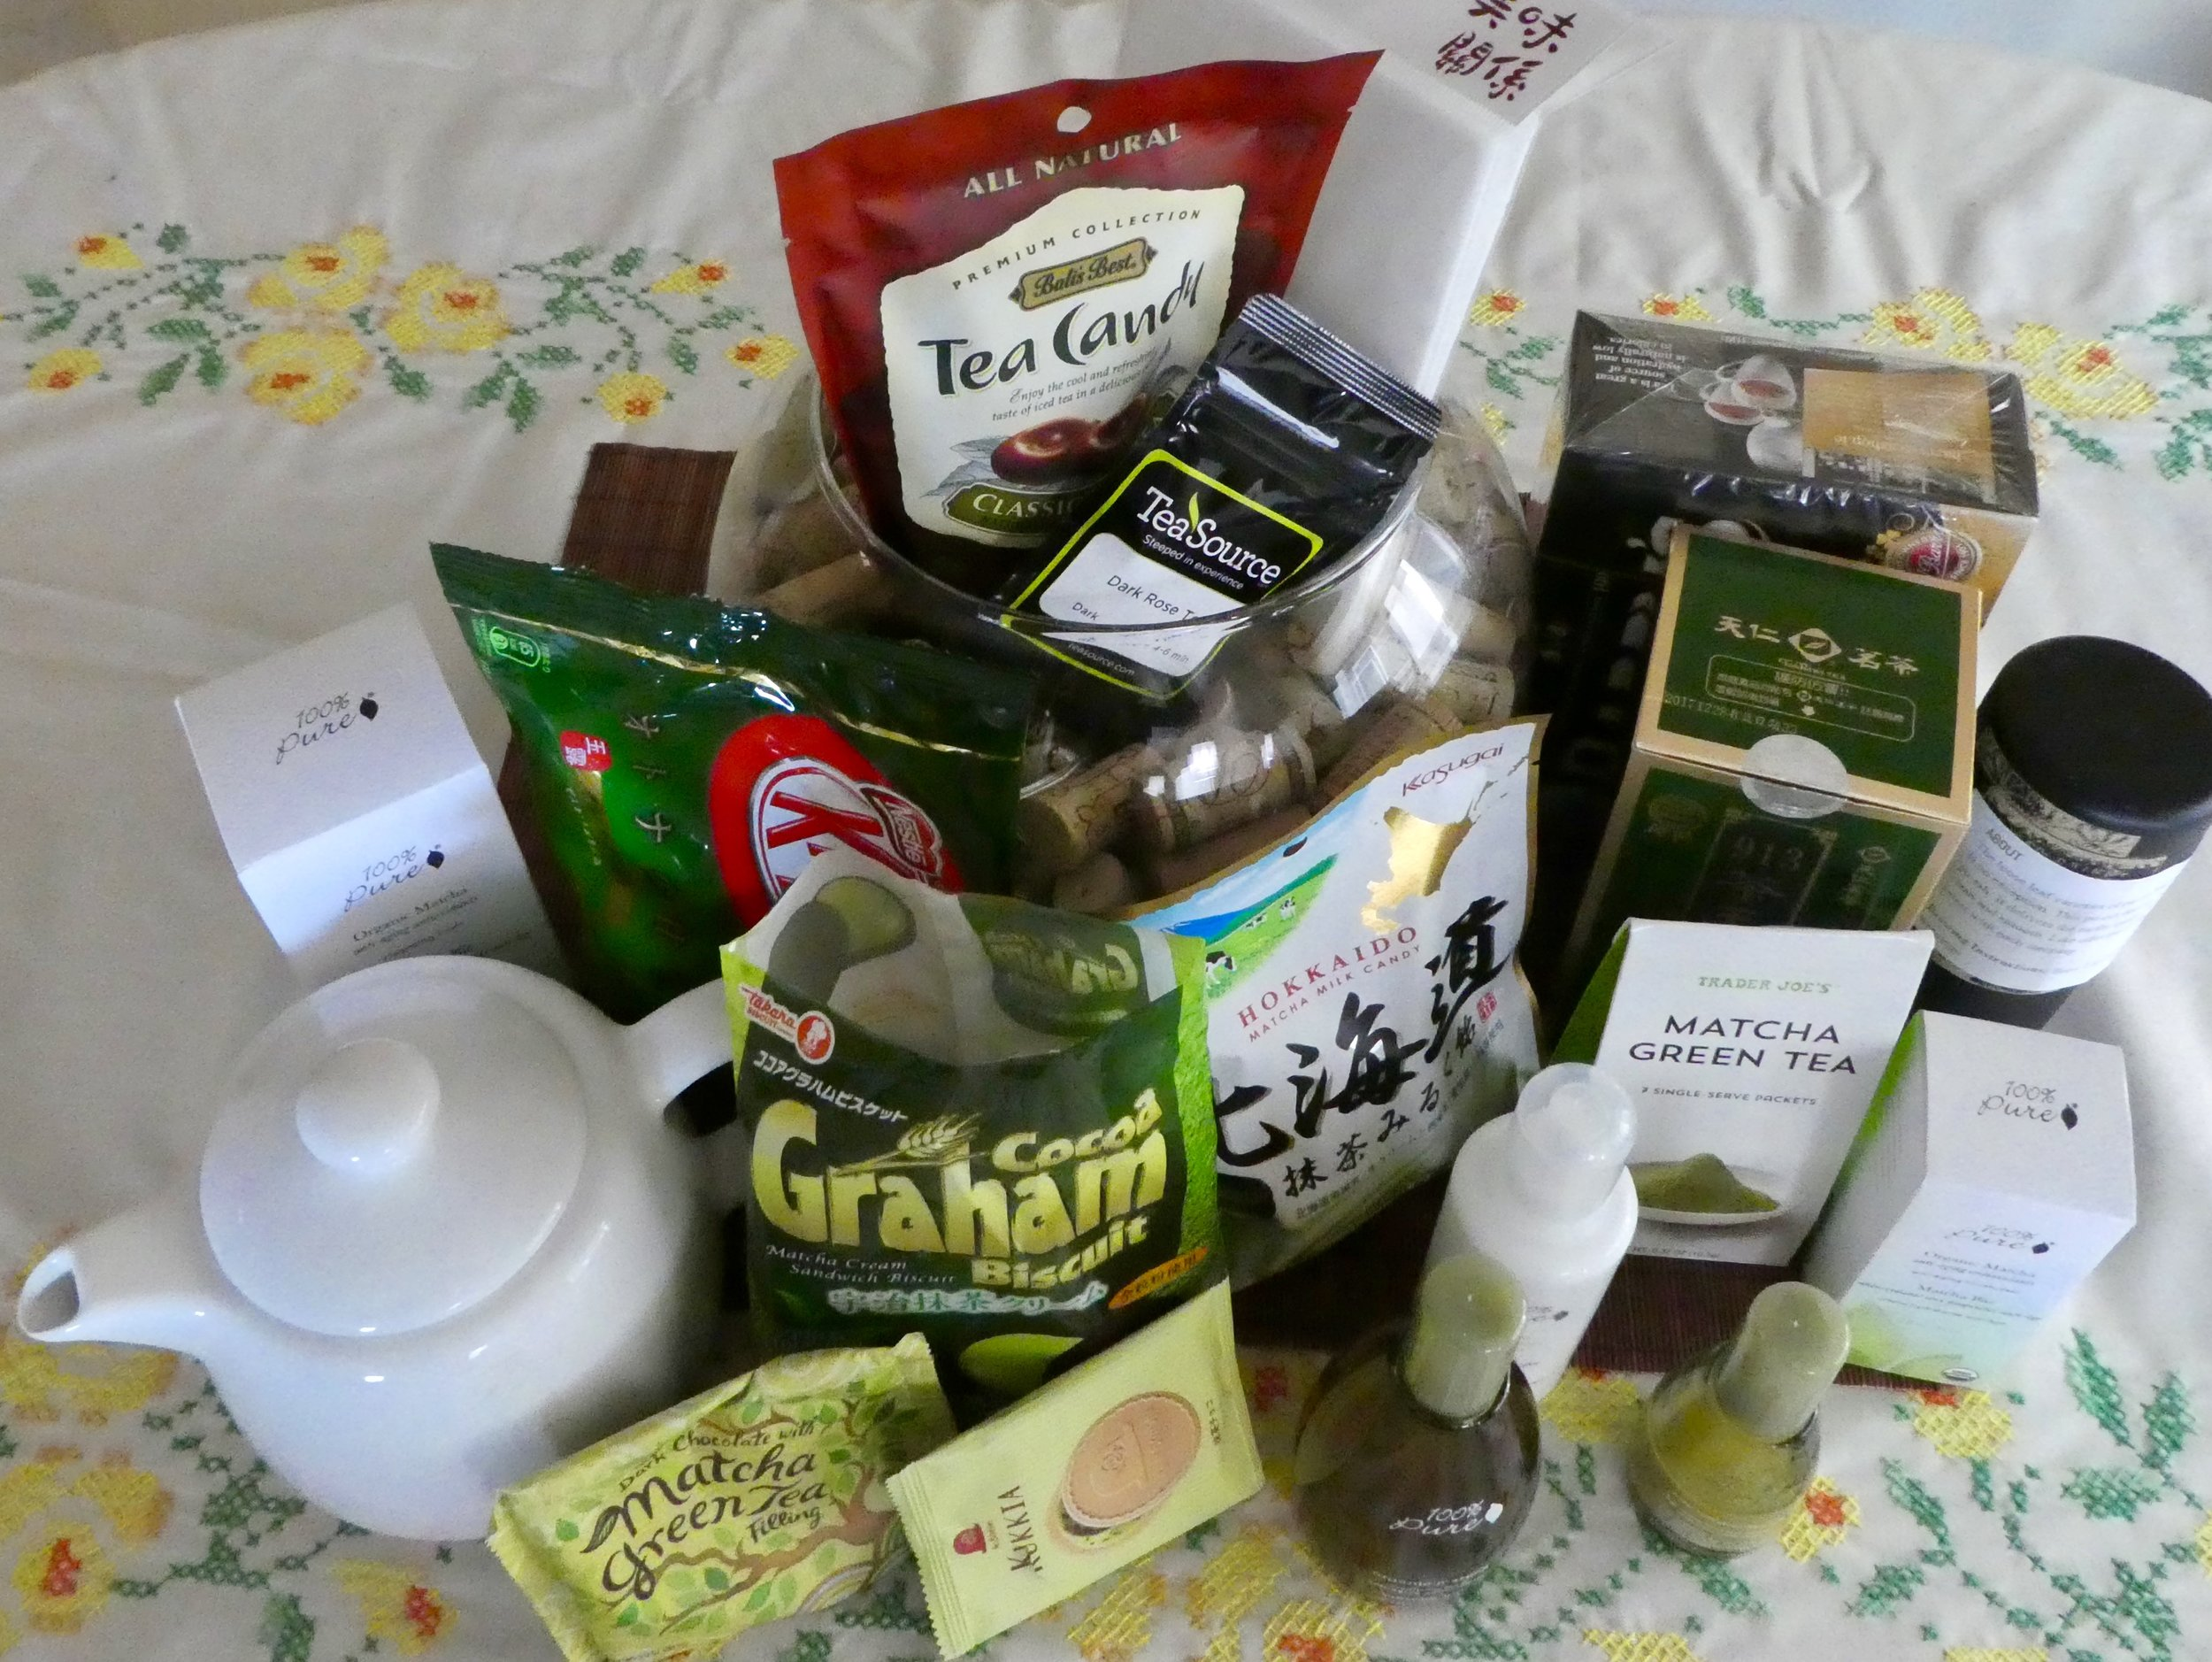 A collection of quickly gathered tea as an ingredient, infusion, or blend.